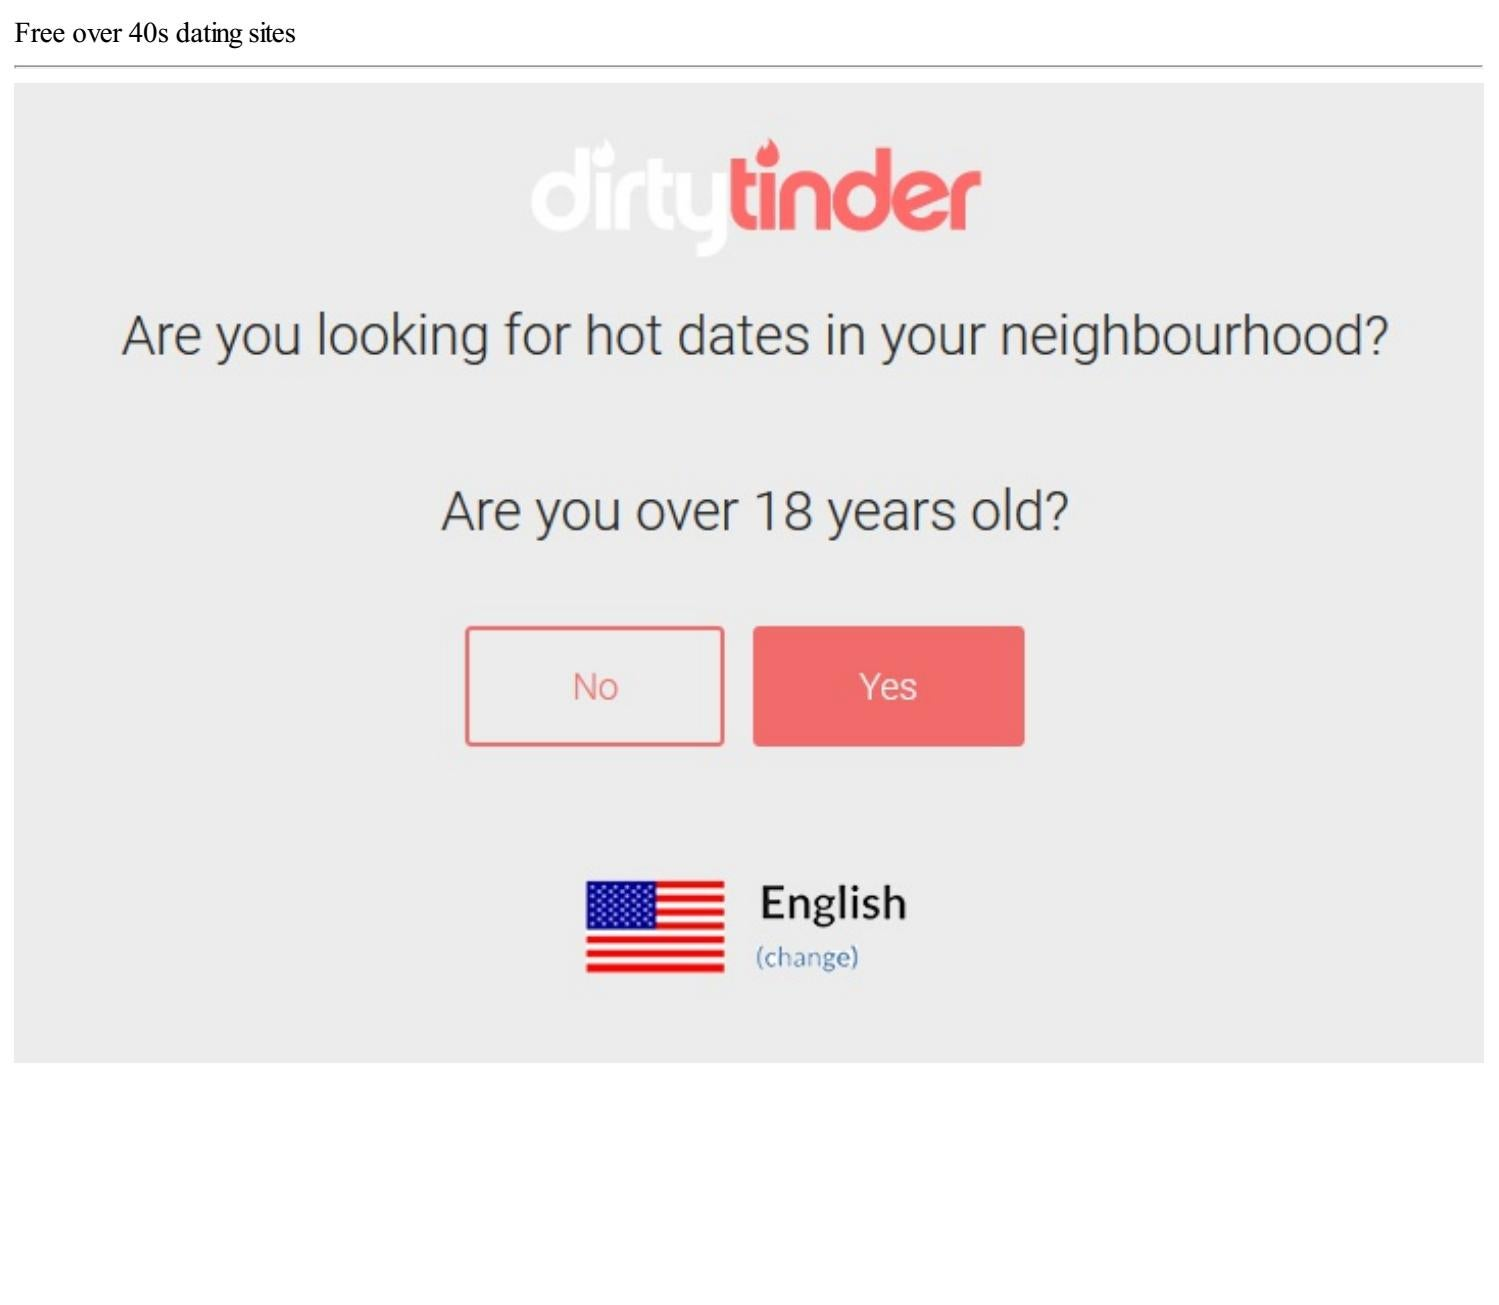 Over 40s dating sites